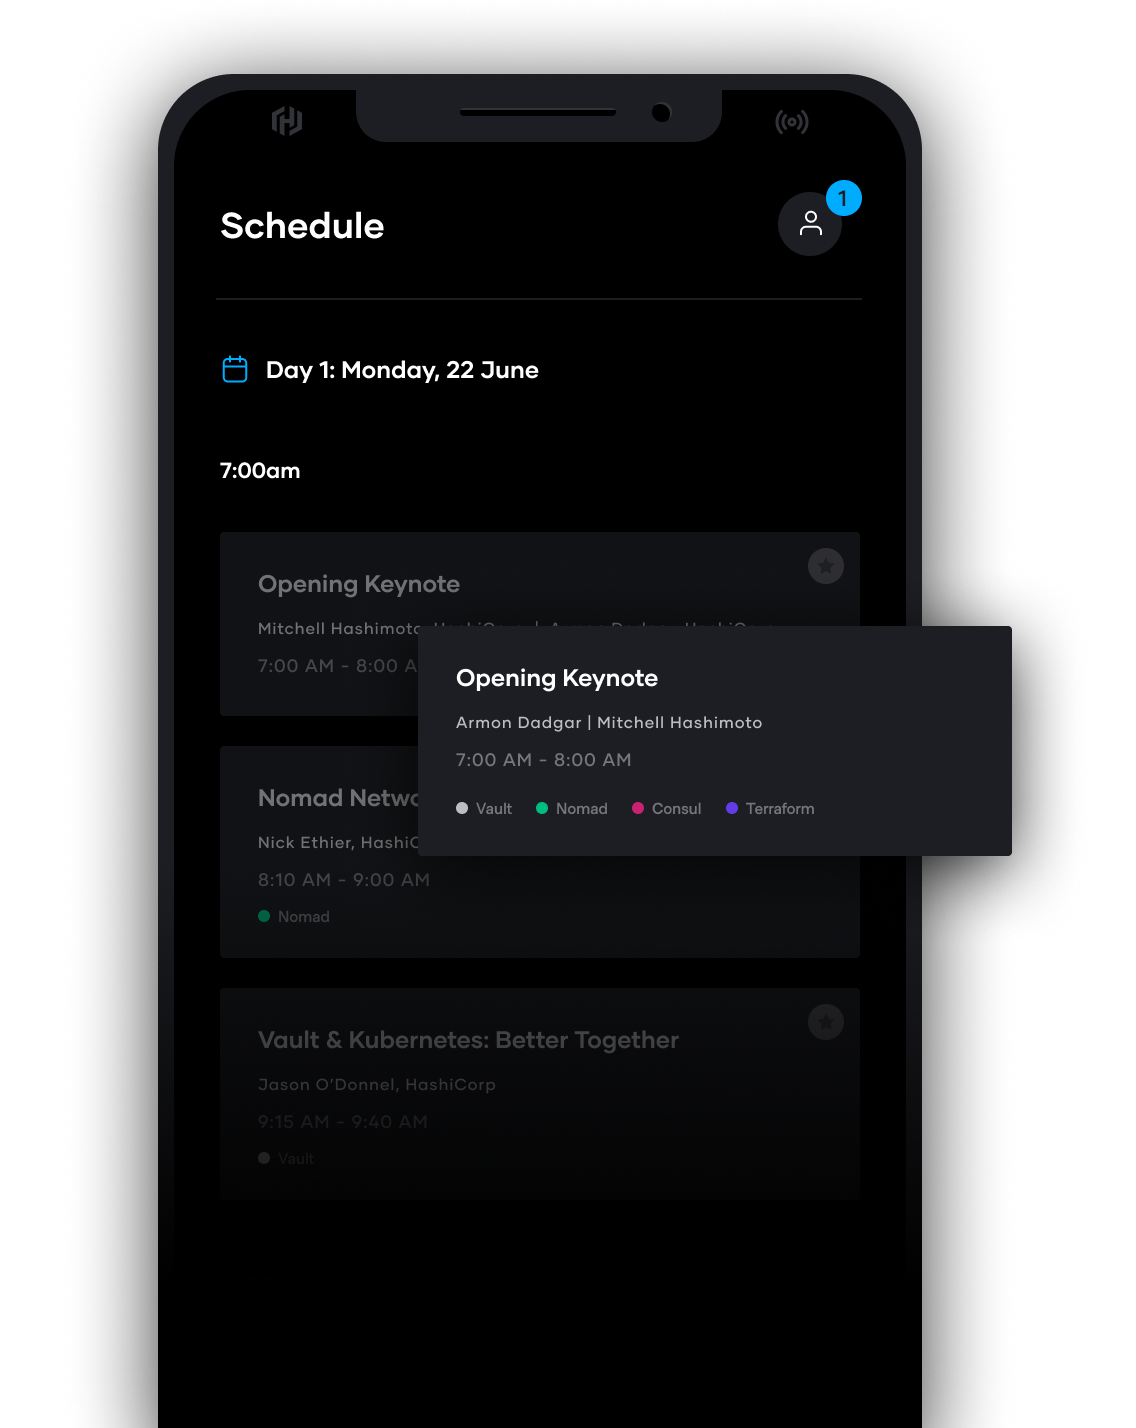 Full Schedule Available